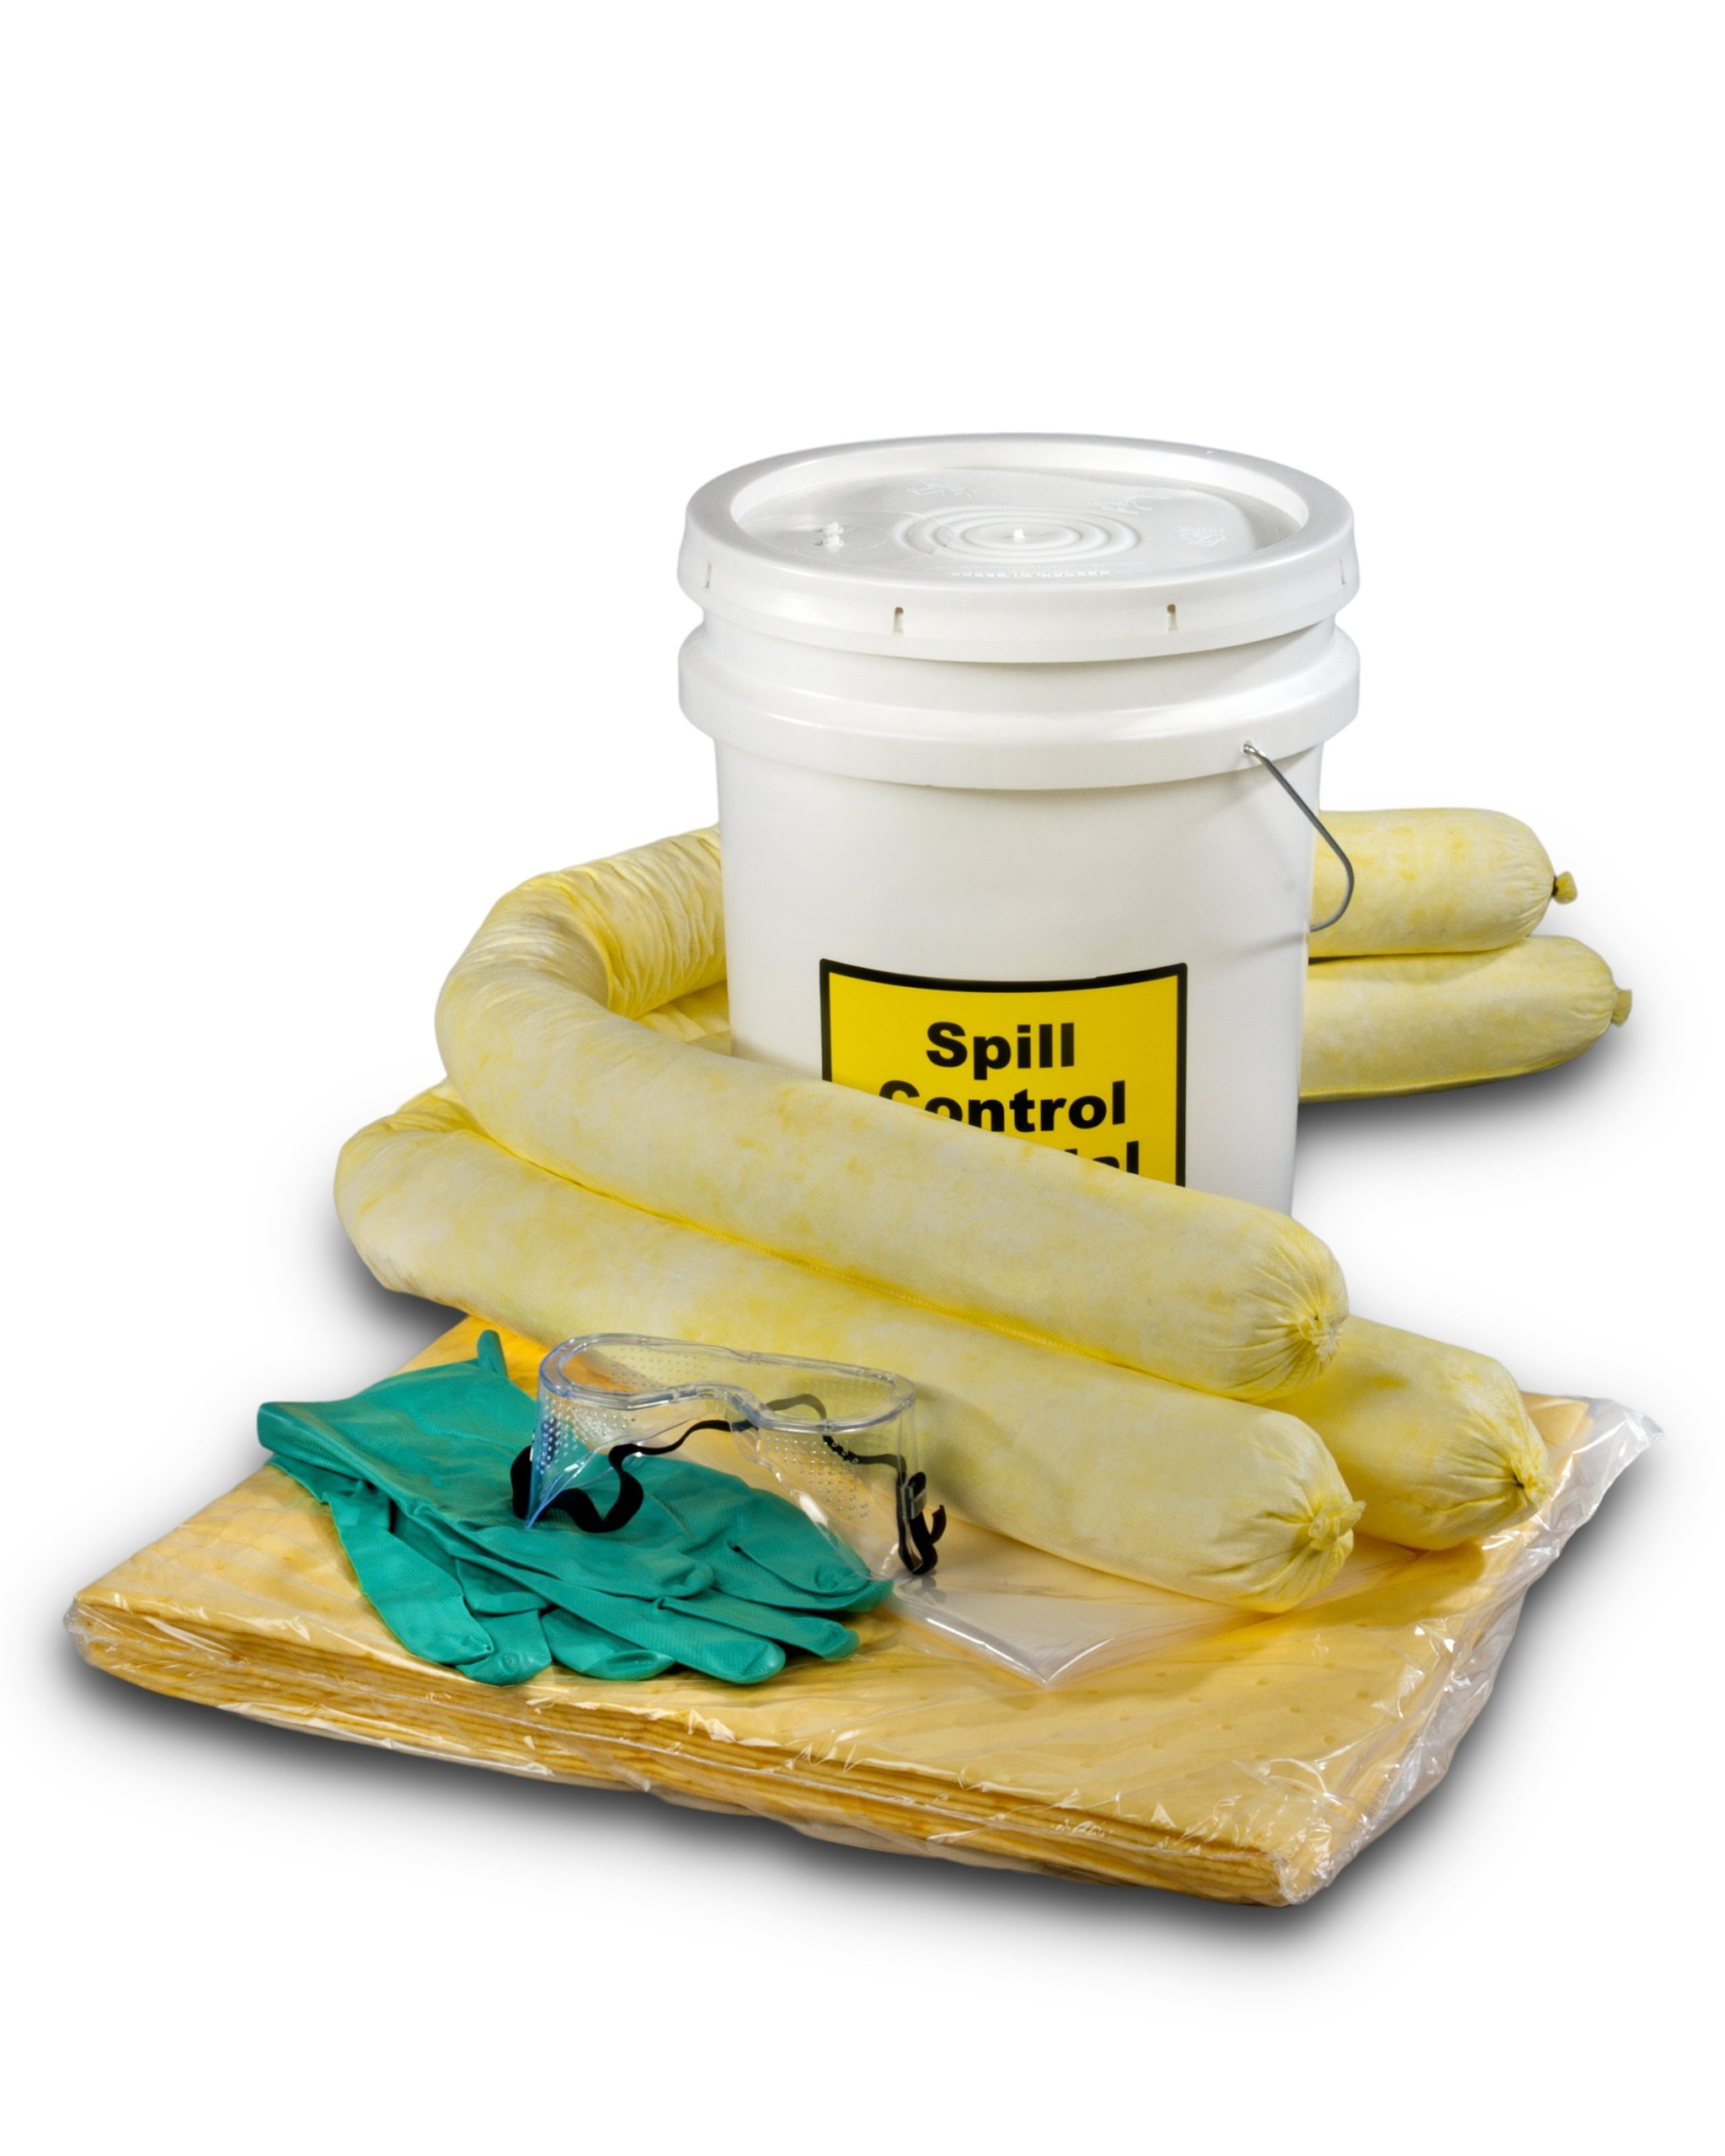 ESP SK-H5 16 Piece 5 Gallons Hazmat Absorbent Spill Kit, 5 Gallons Oil Absorbency by ESP